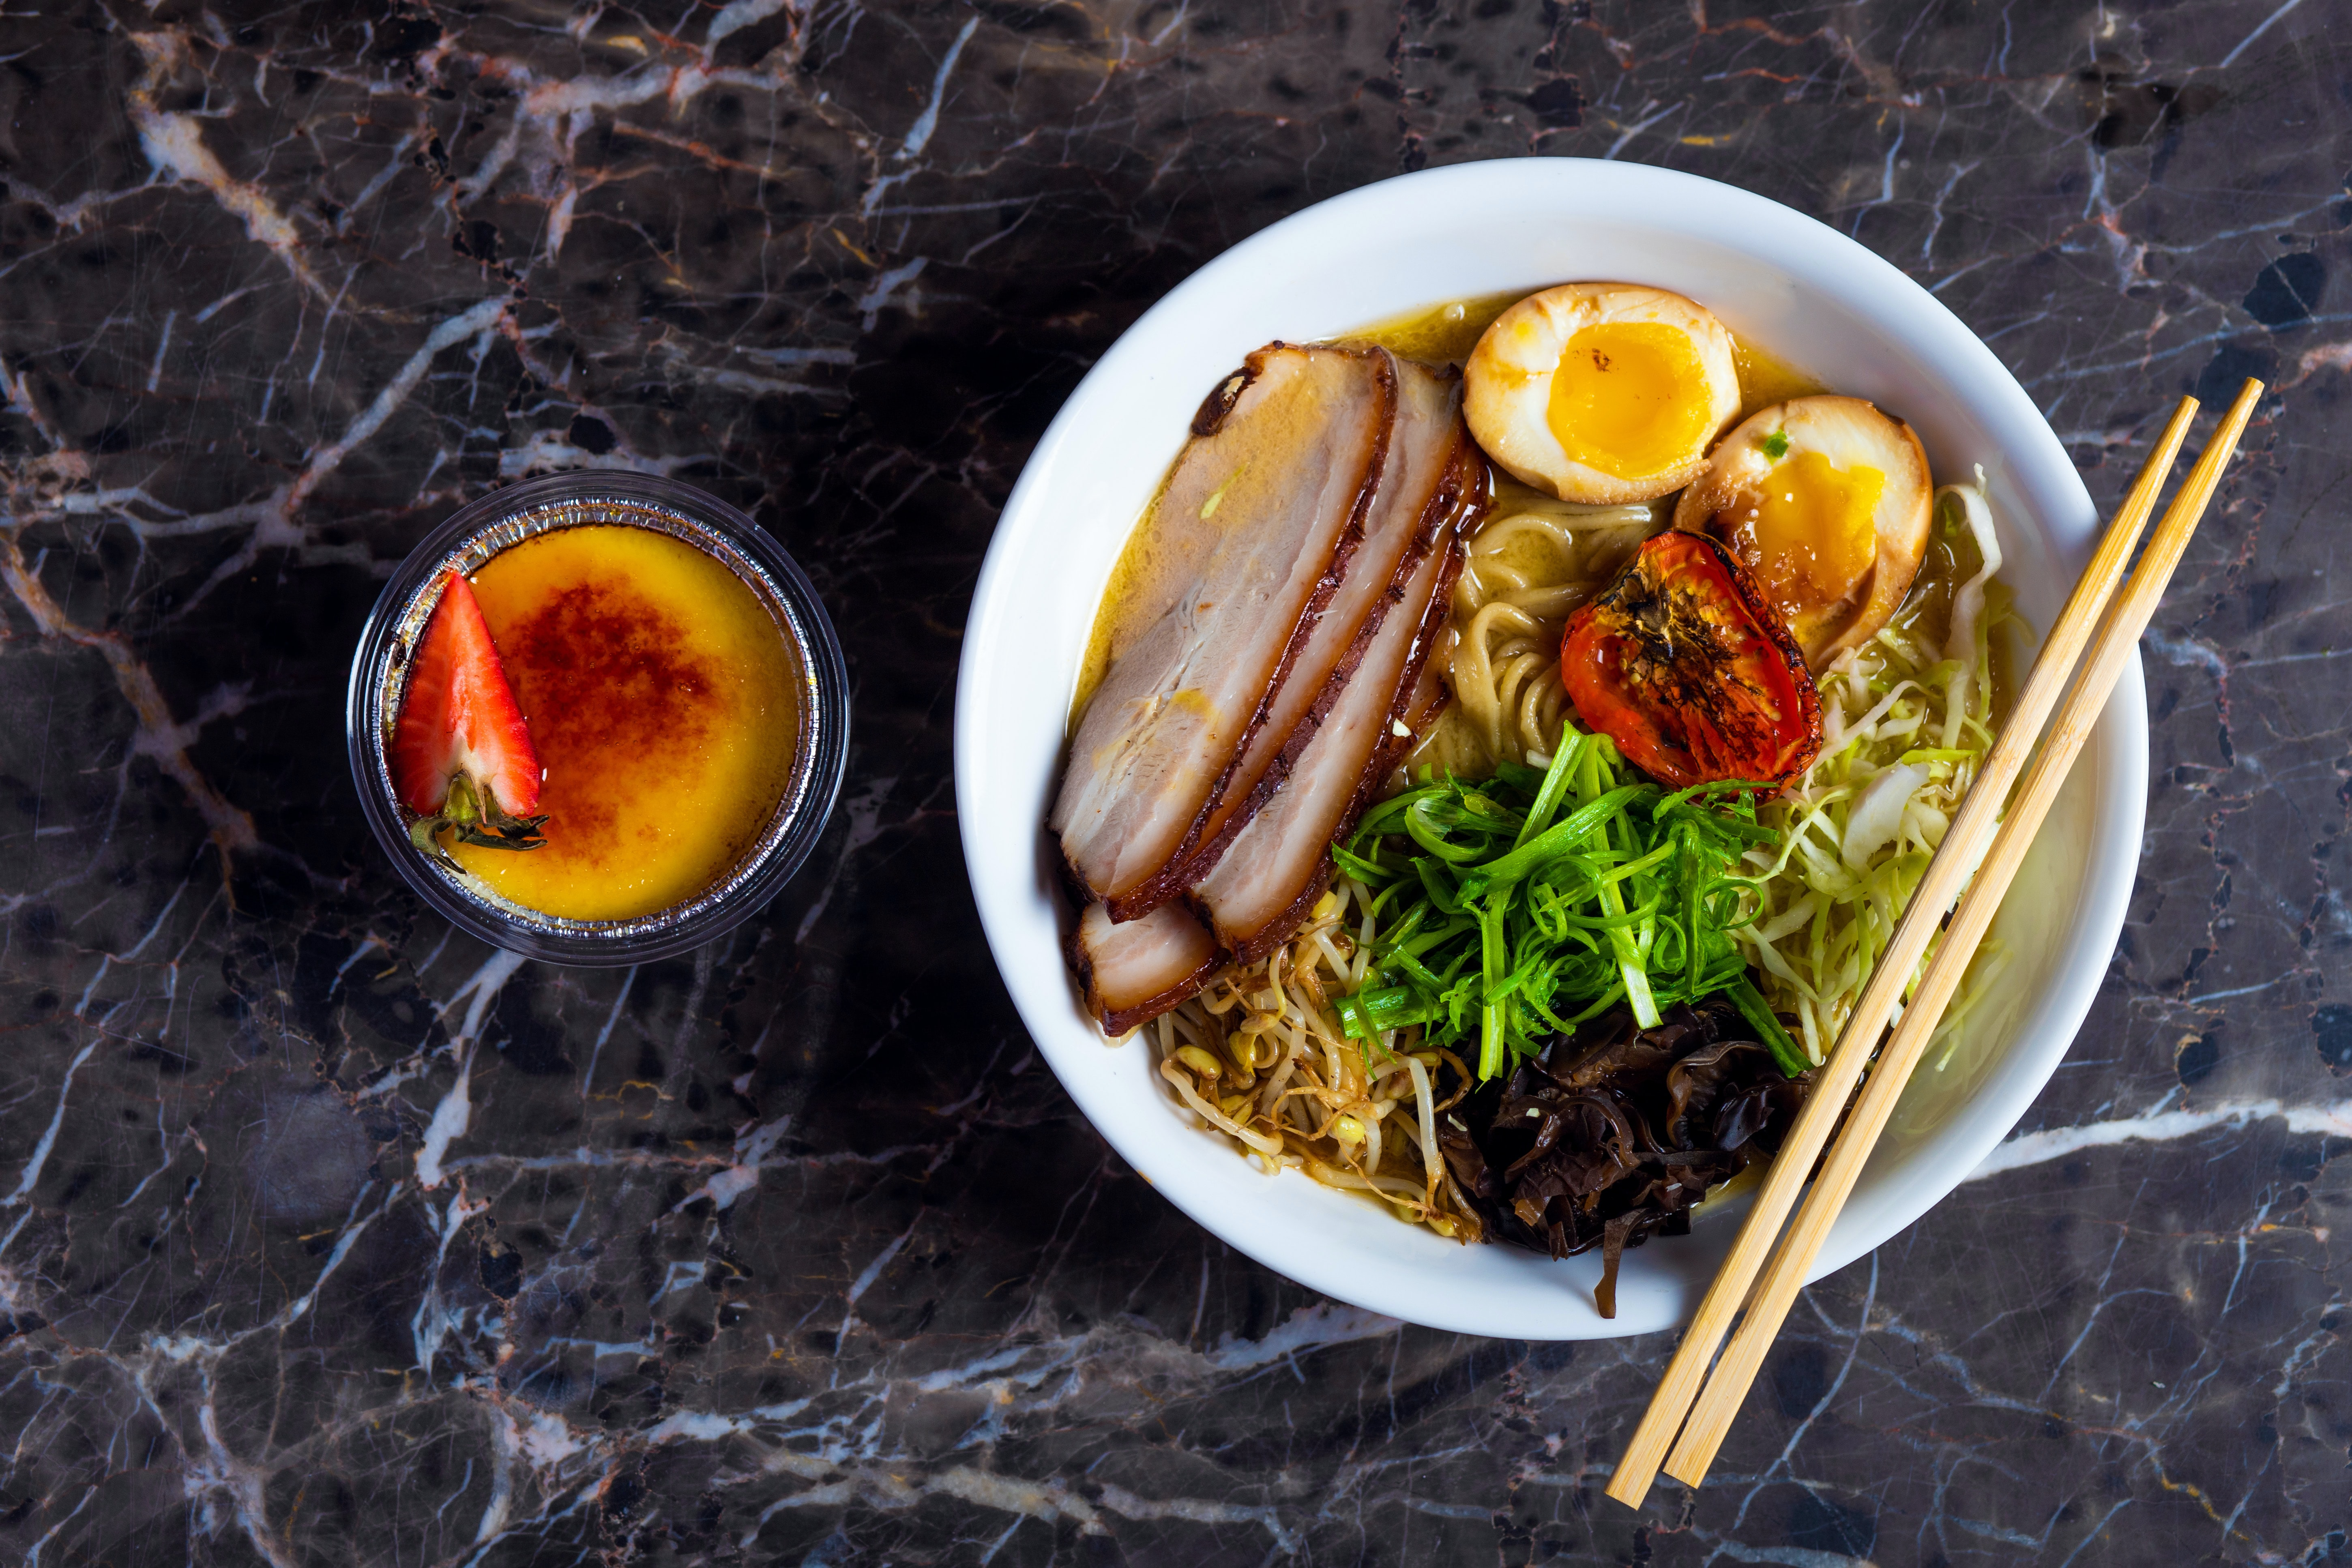 Instant Noodles, Souvenirs To Bring Back From Thailand